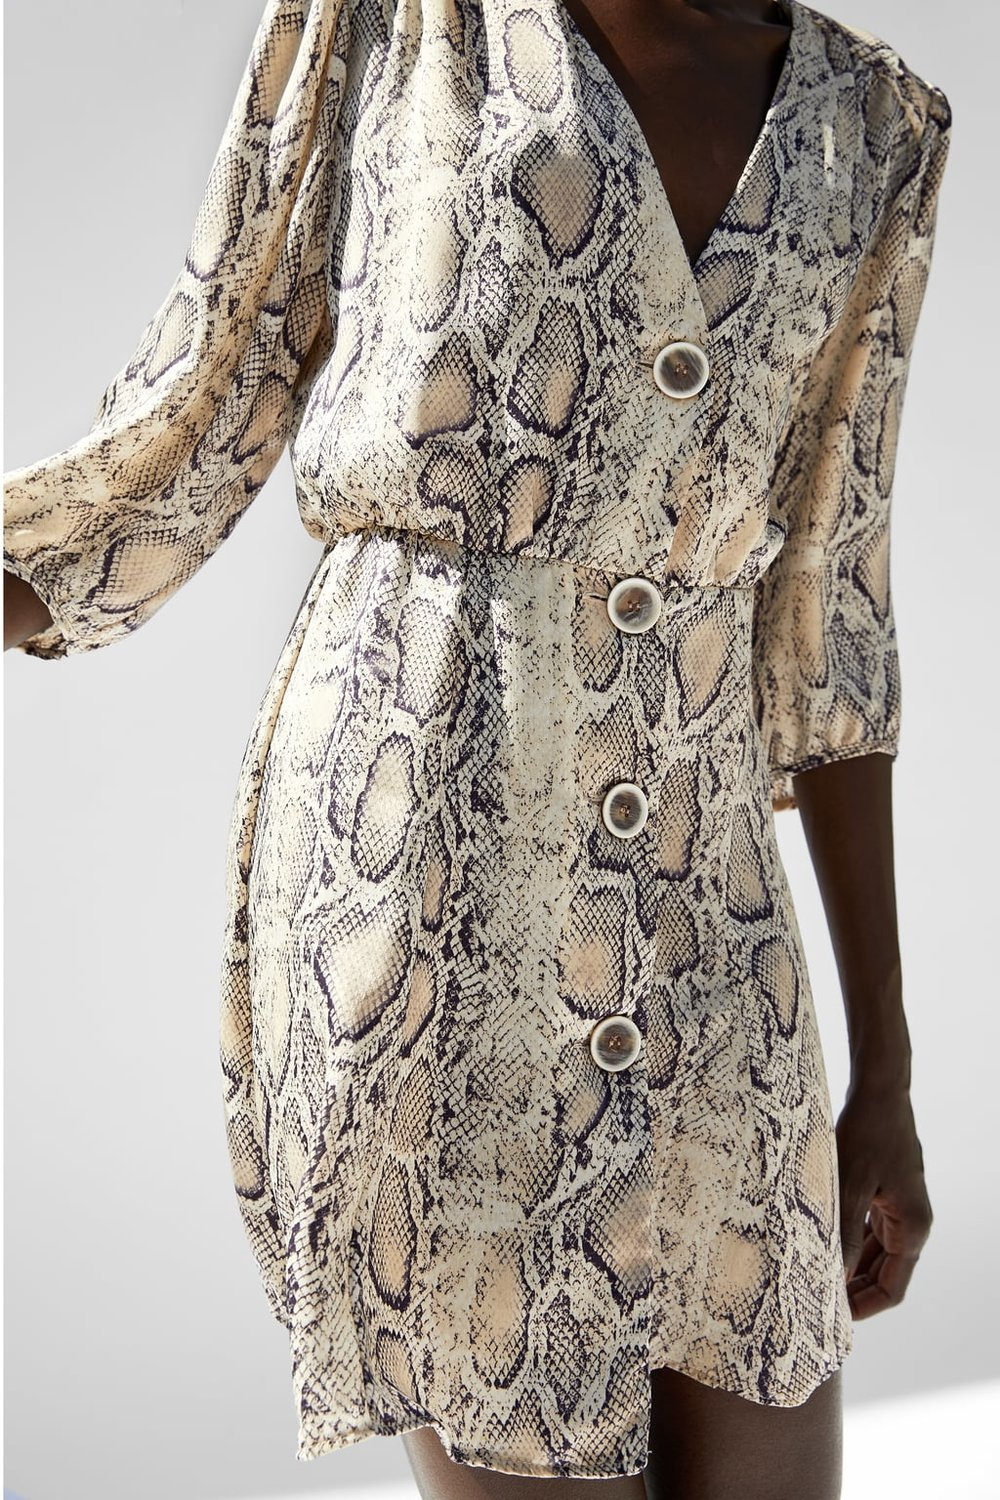 https://www.zara.com/ca/en/snakeskin-print-mini-dress-p07931119.html?v1=6835662&v2=1074541